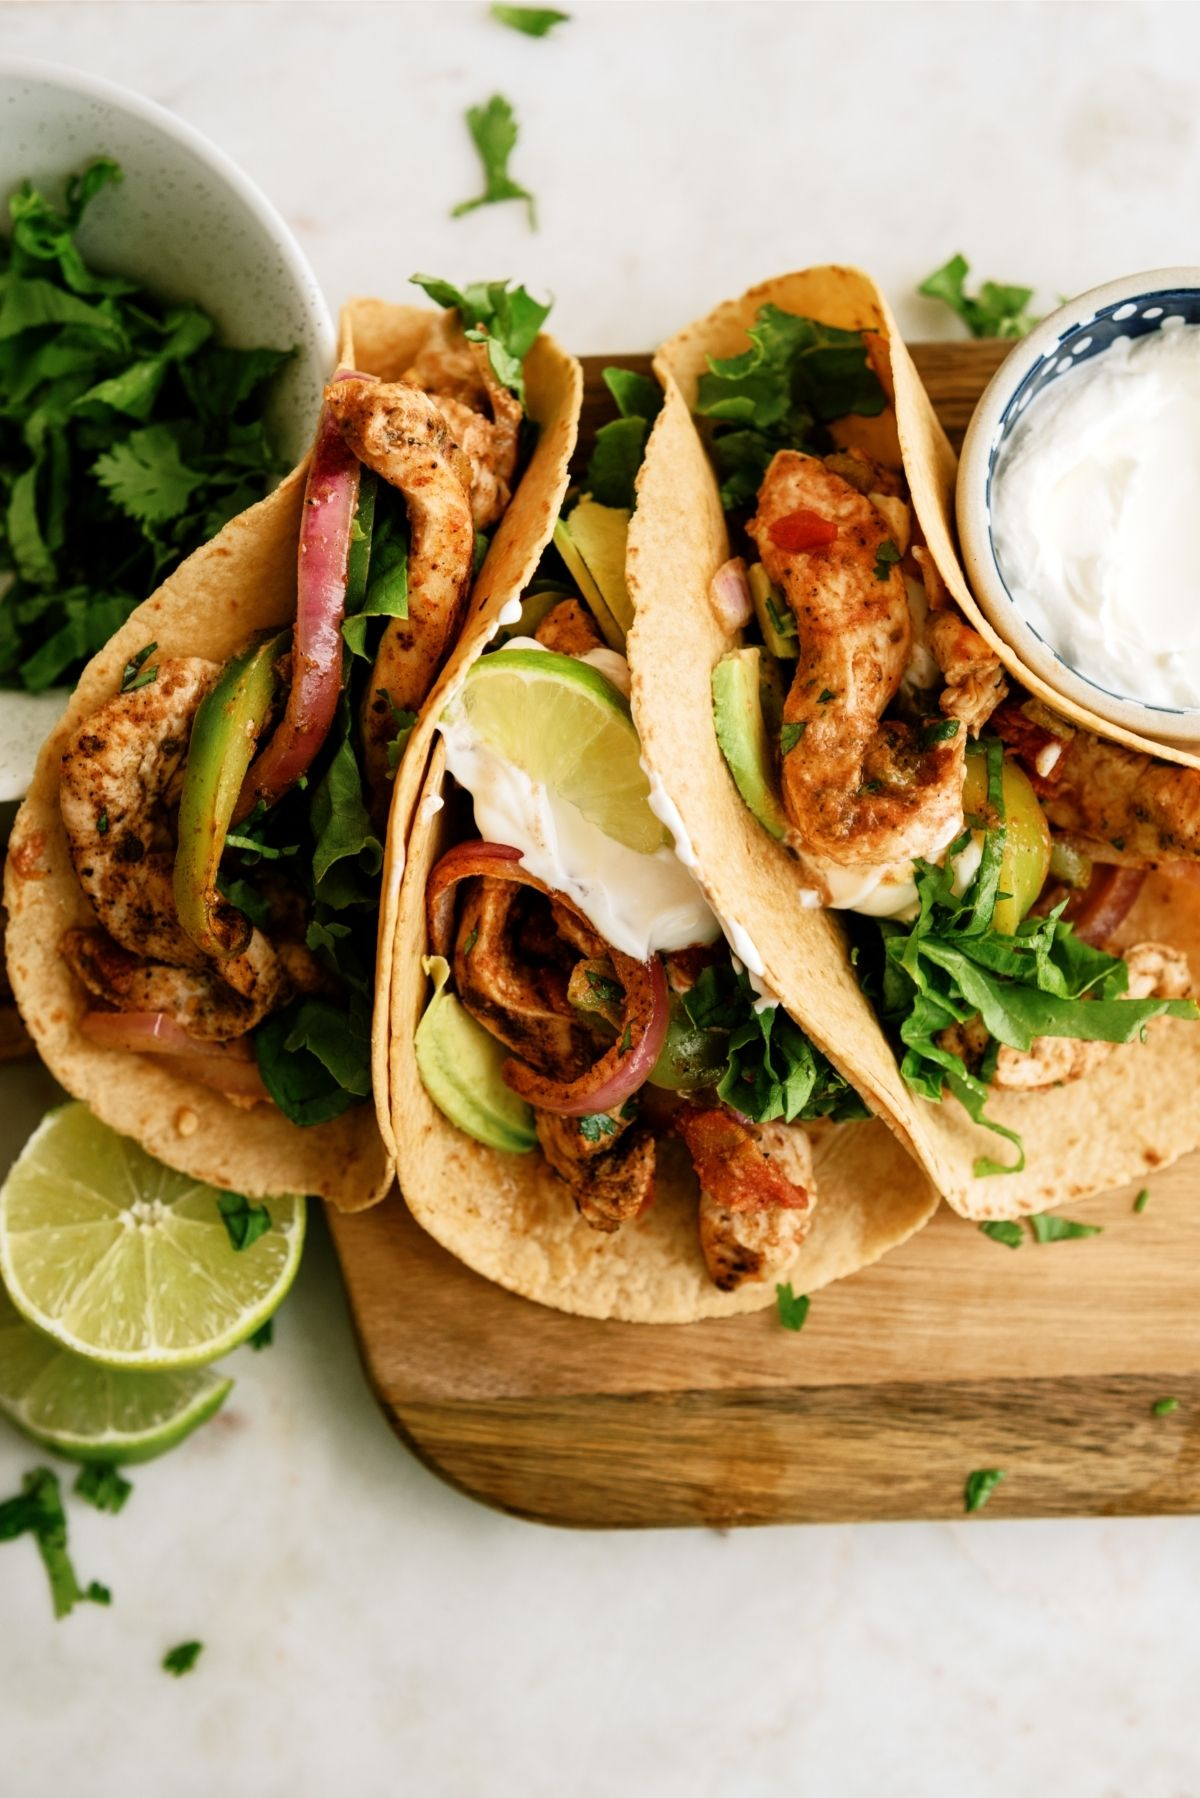 Baked Chicken Fajitas in tortillas, topped with a lime wedge and side of sour cream